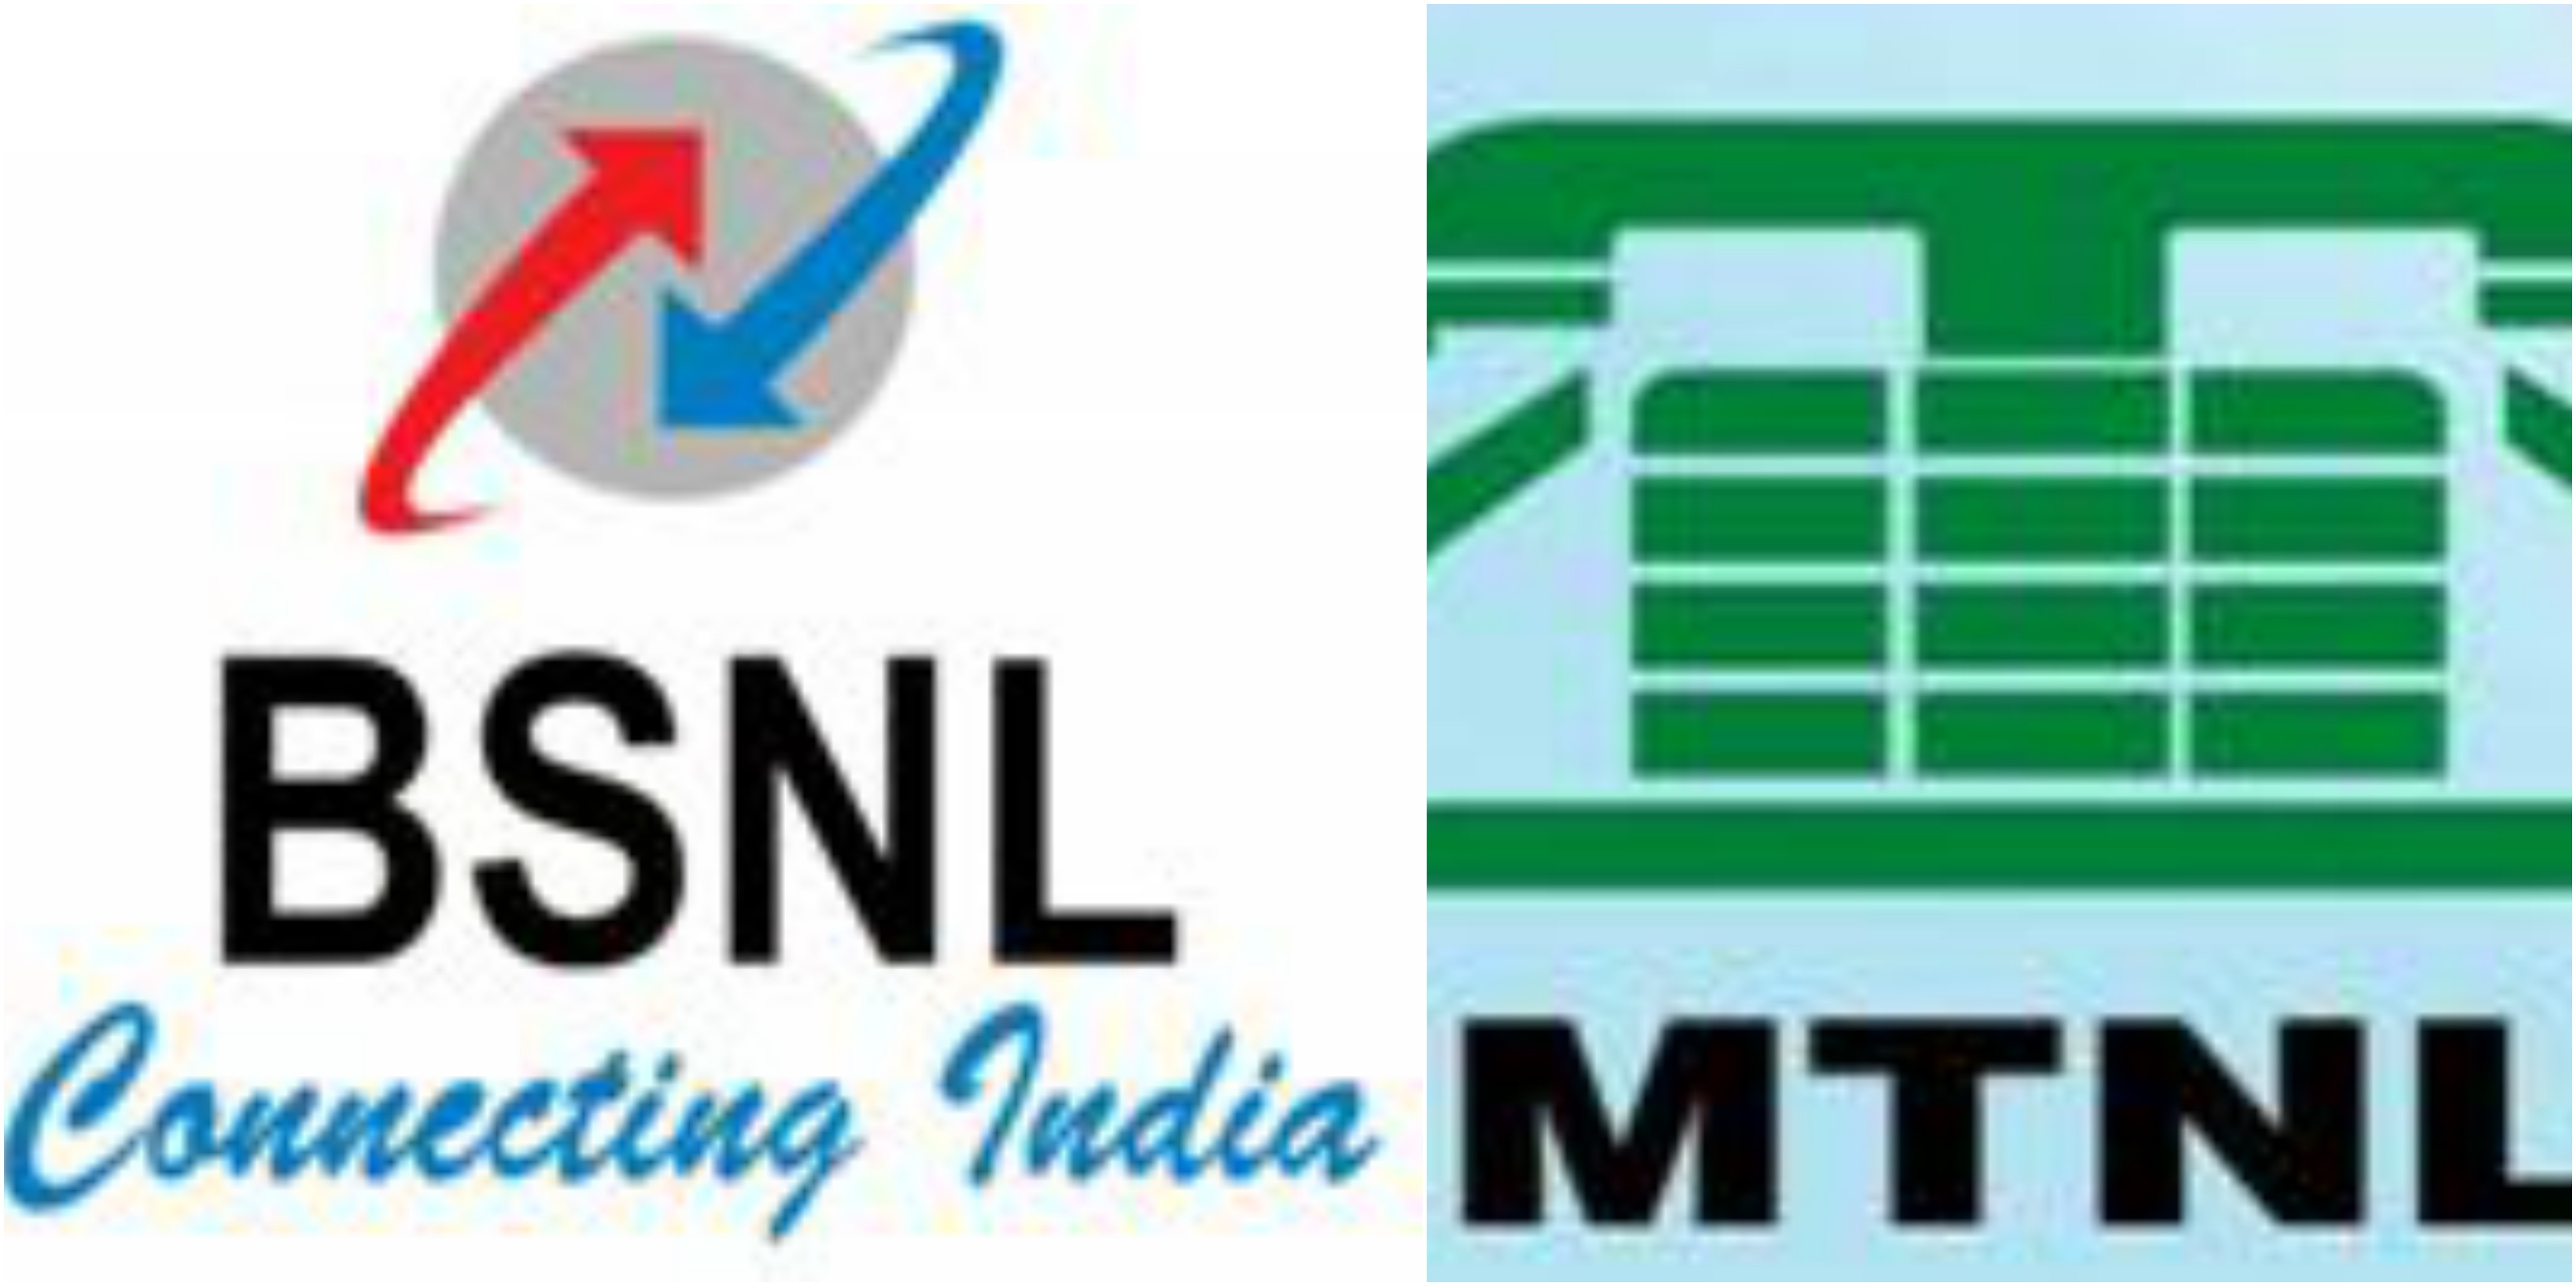 BSNL-MTNL Merger Will Work Only If Old Management Theories Are Junked